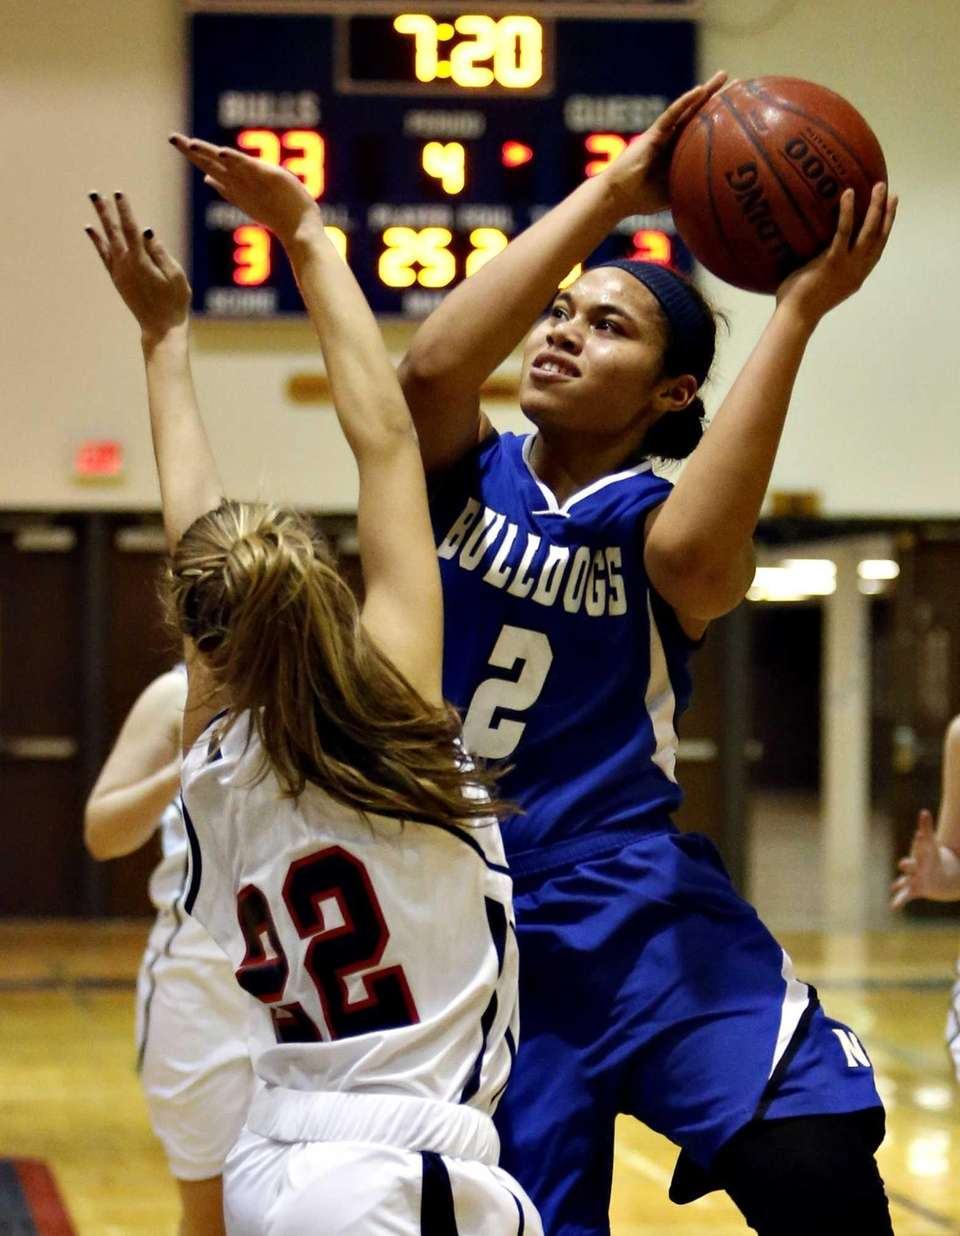 North Babylon's Brianna Jones puts up a layup